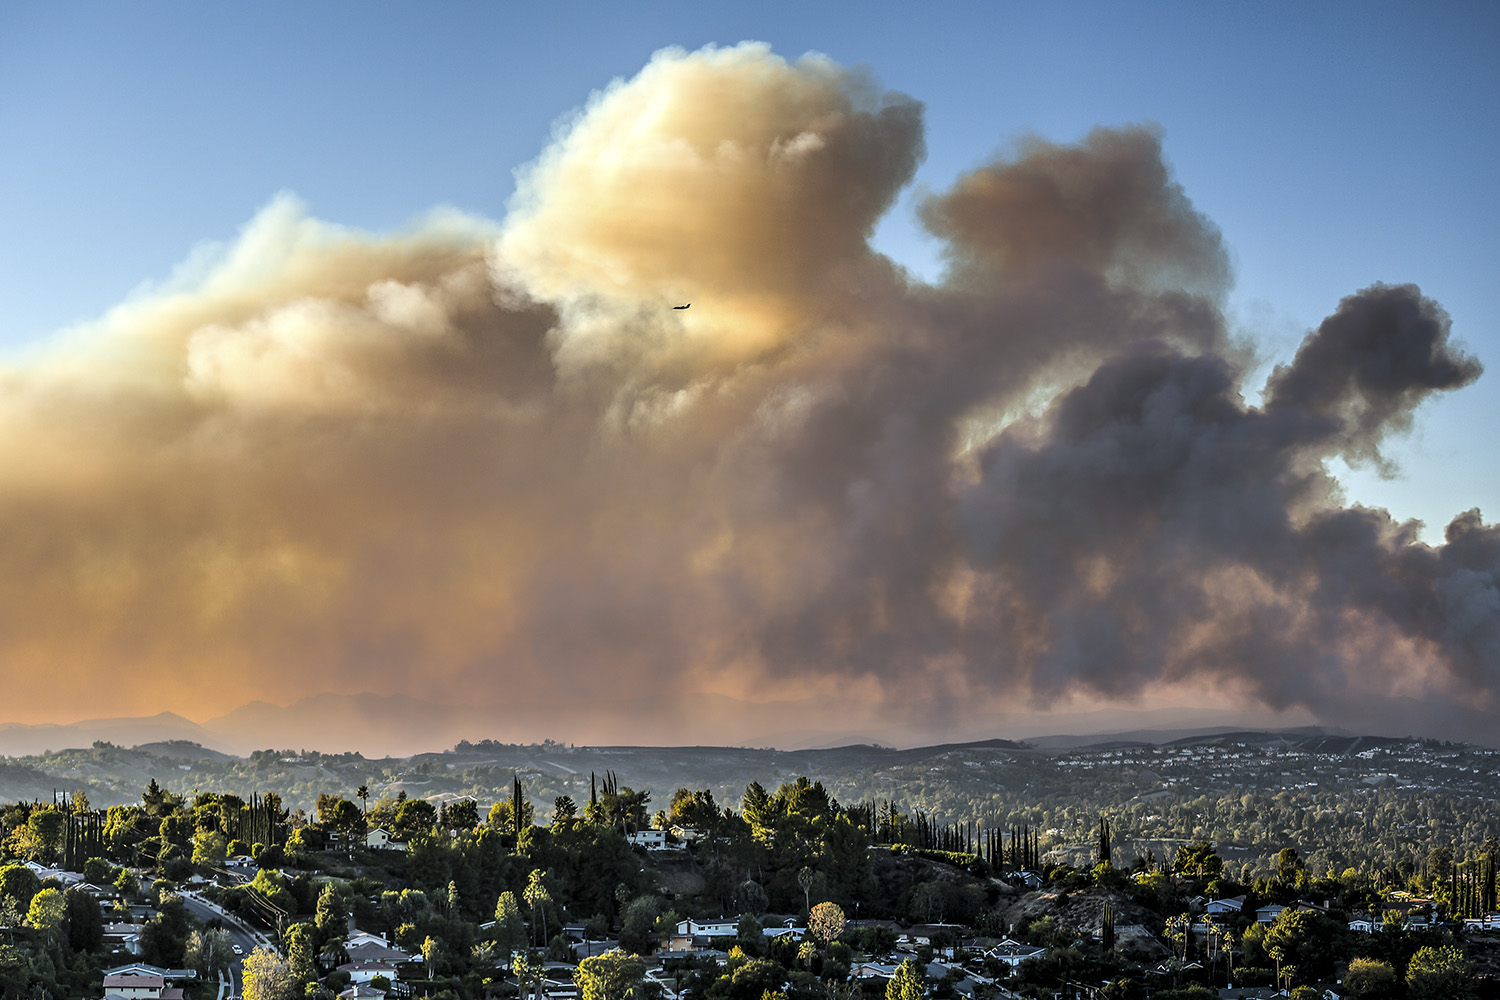 Stanford researchers explain what to expect from wildfire season this year and in the future